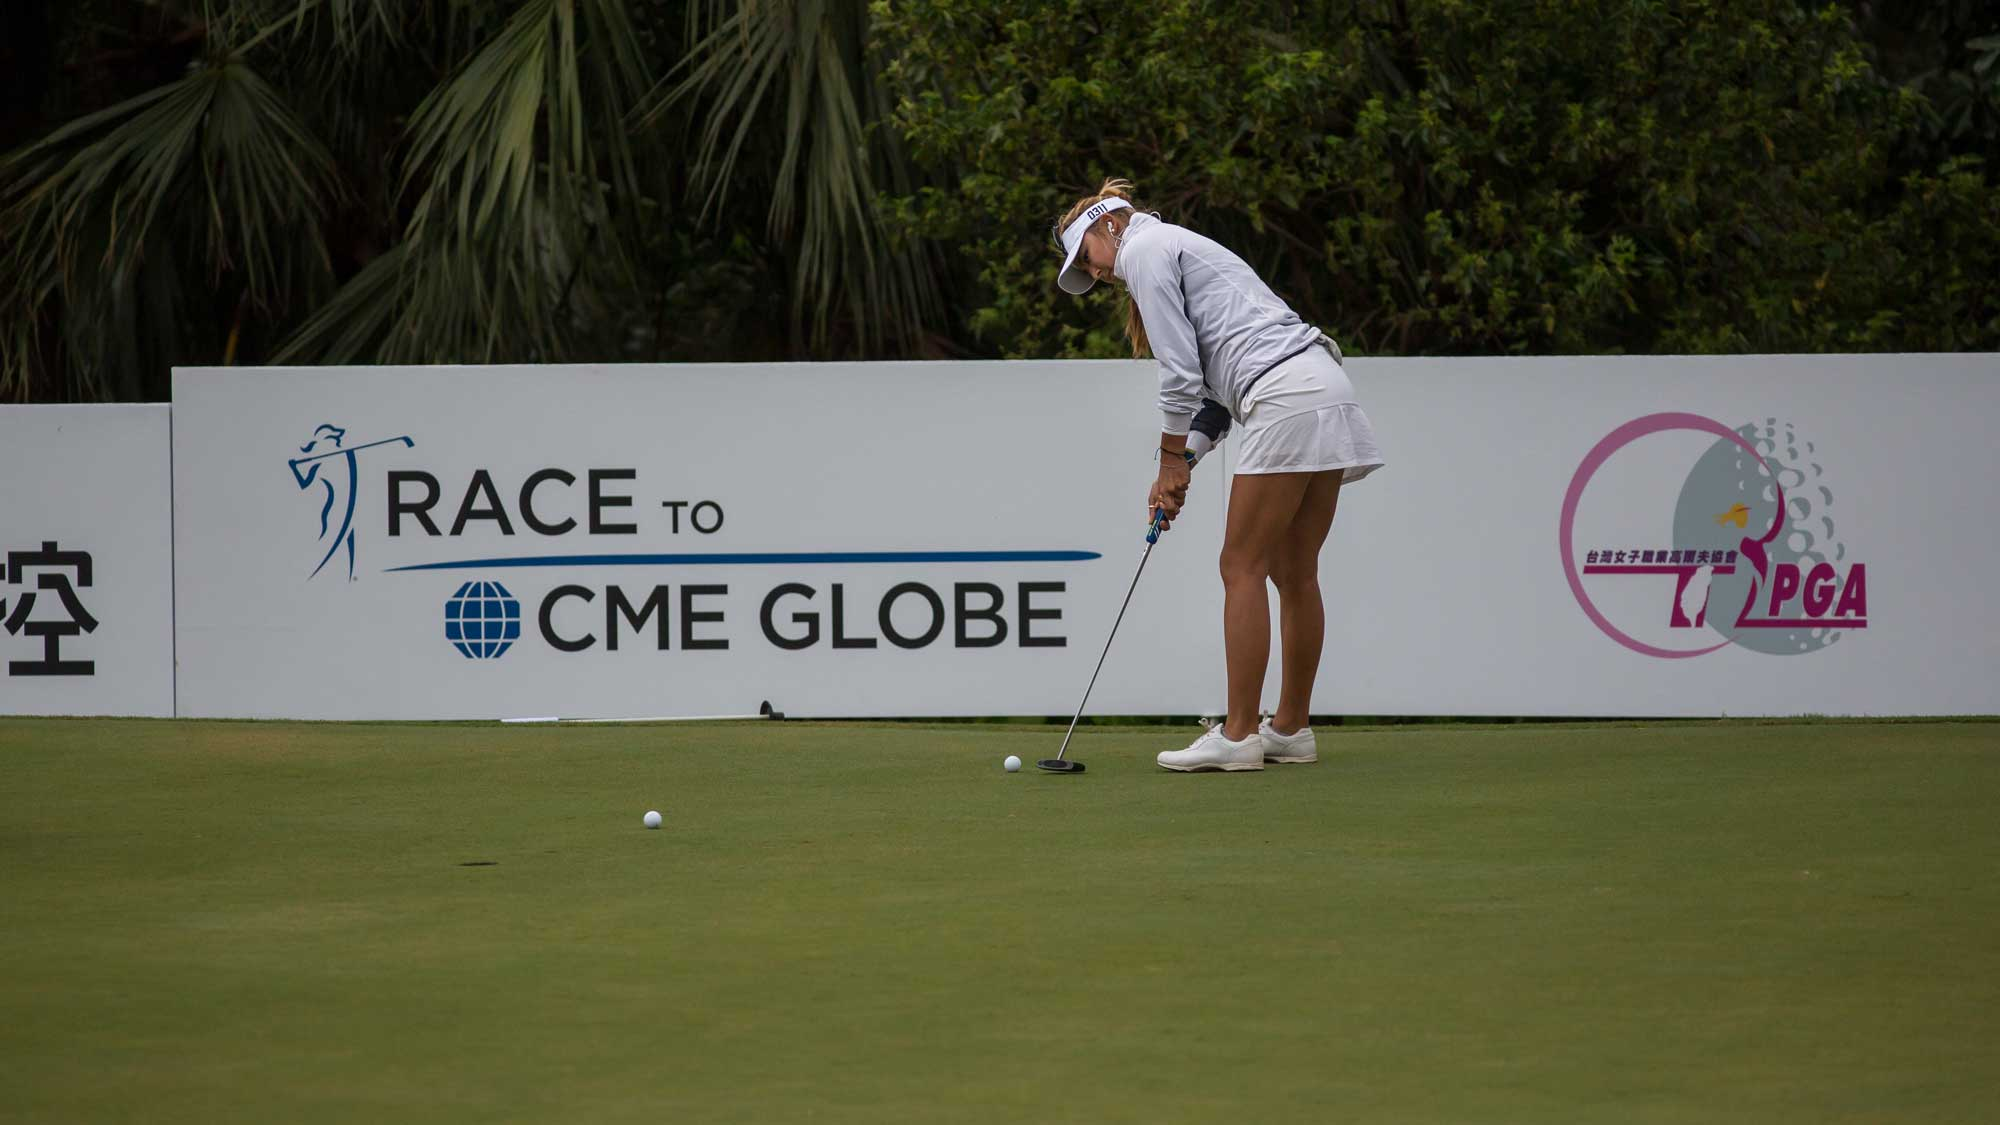 Alison Lee practise before competition in the Fubon Taiwan LPGA Championship